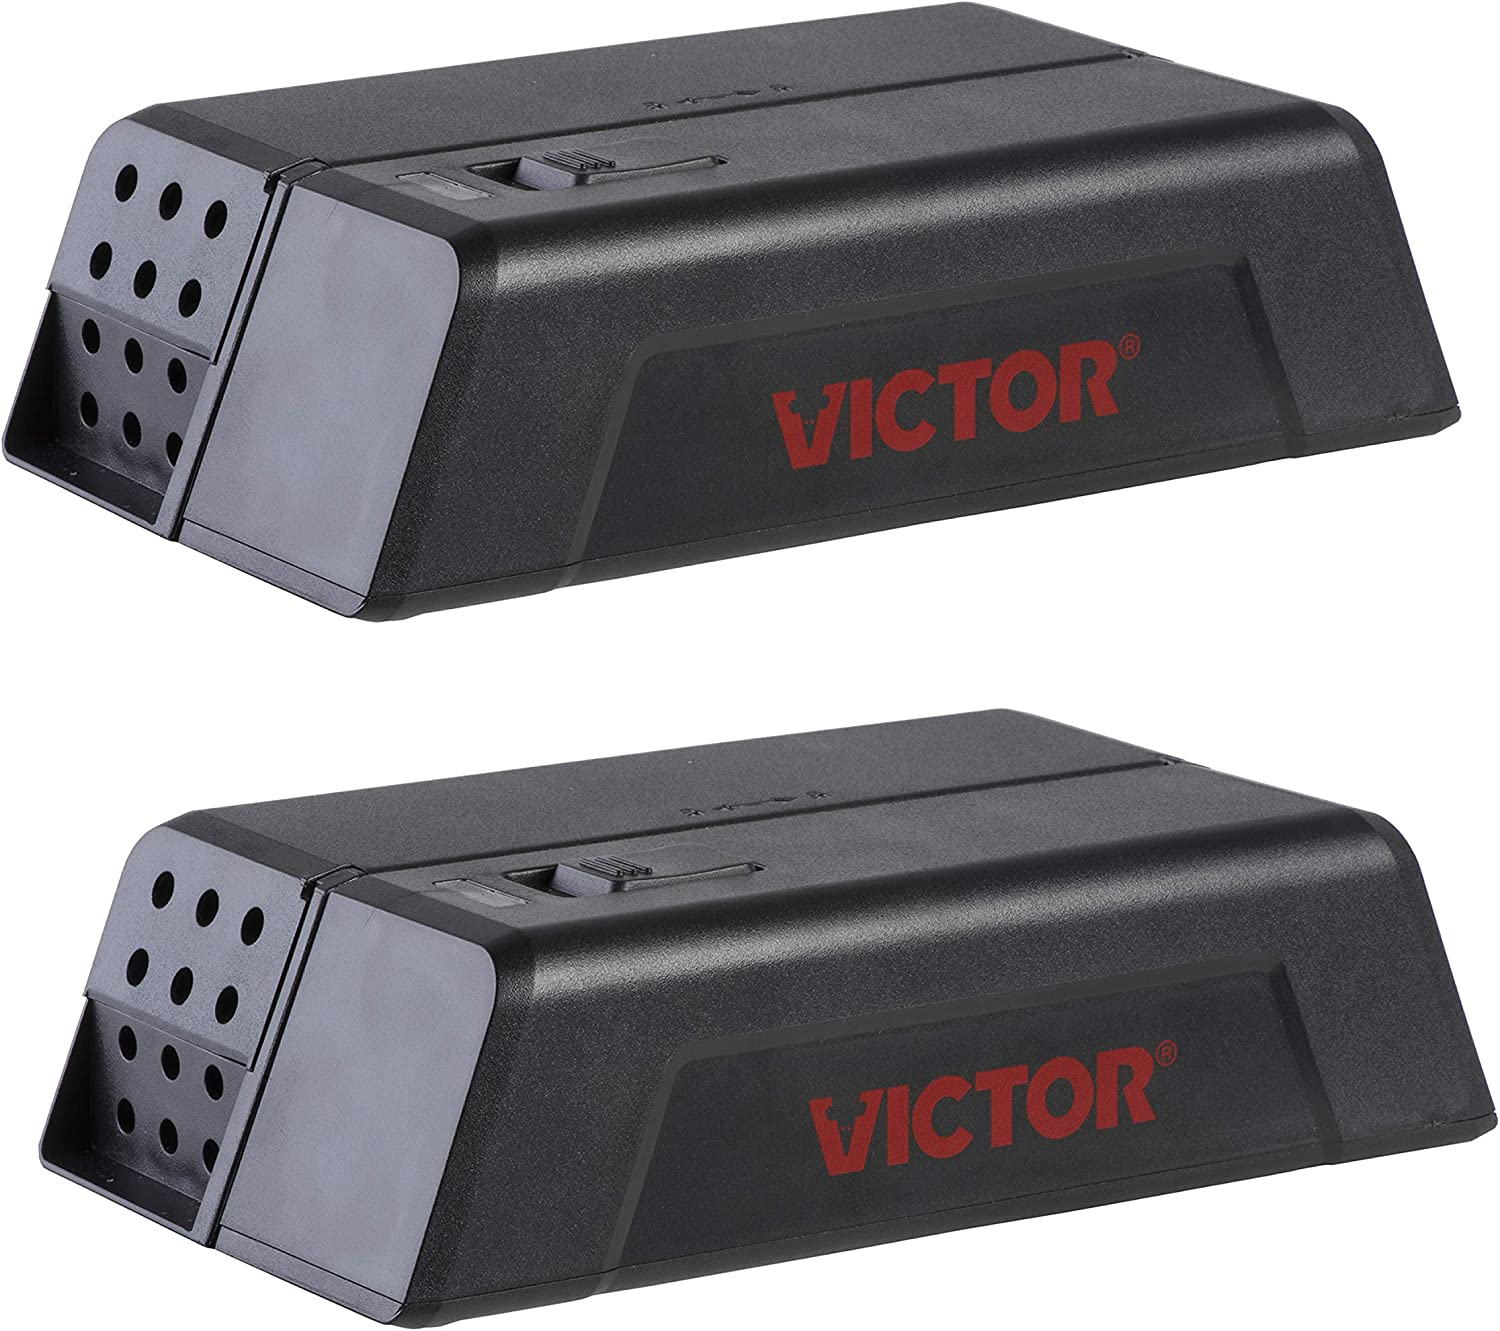 Victor M250S No Touch, No See Upgraded Indoor Electronic Mouse Trap - 2 Traps